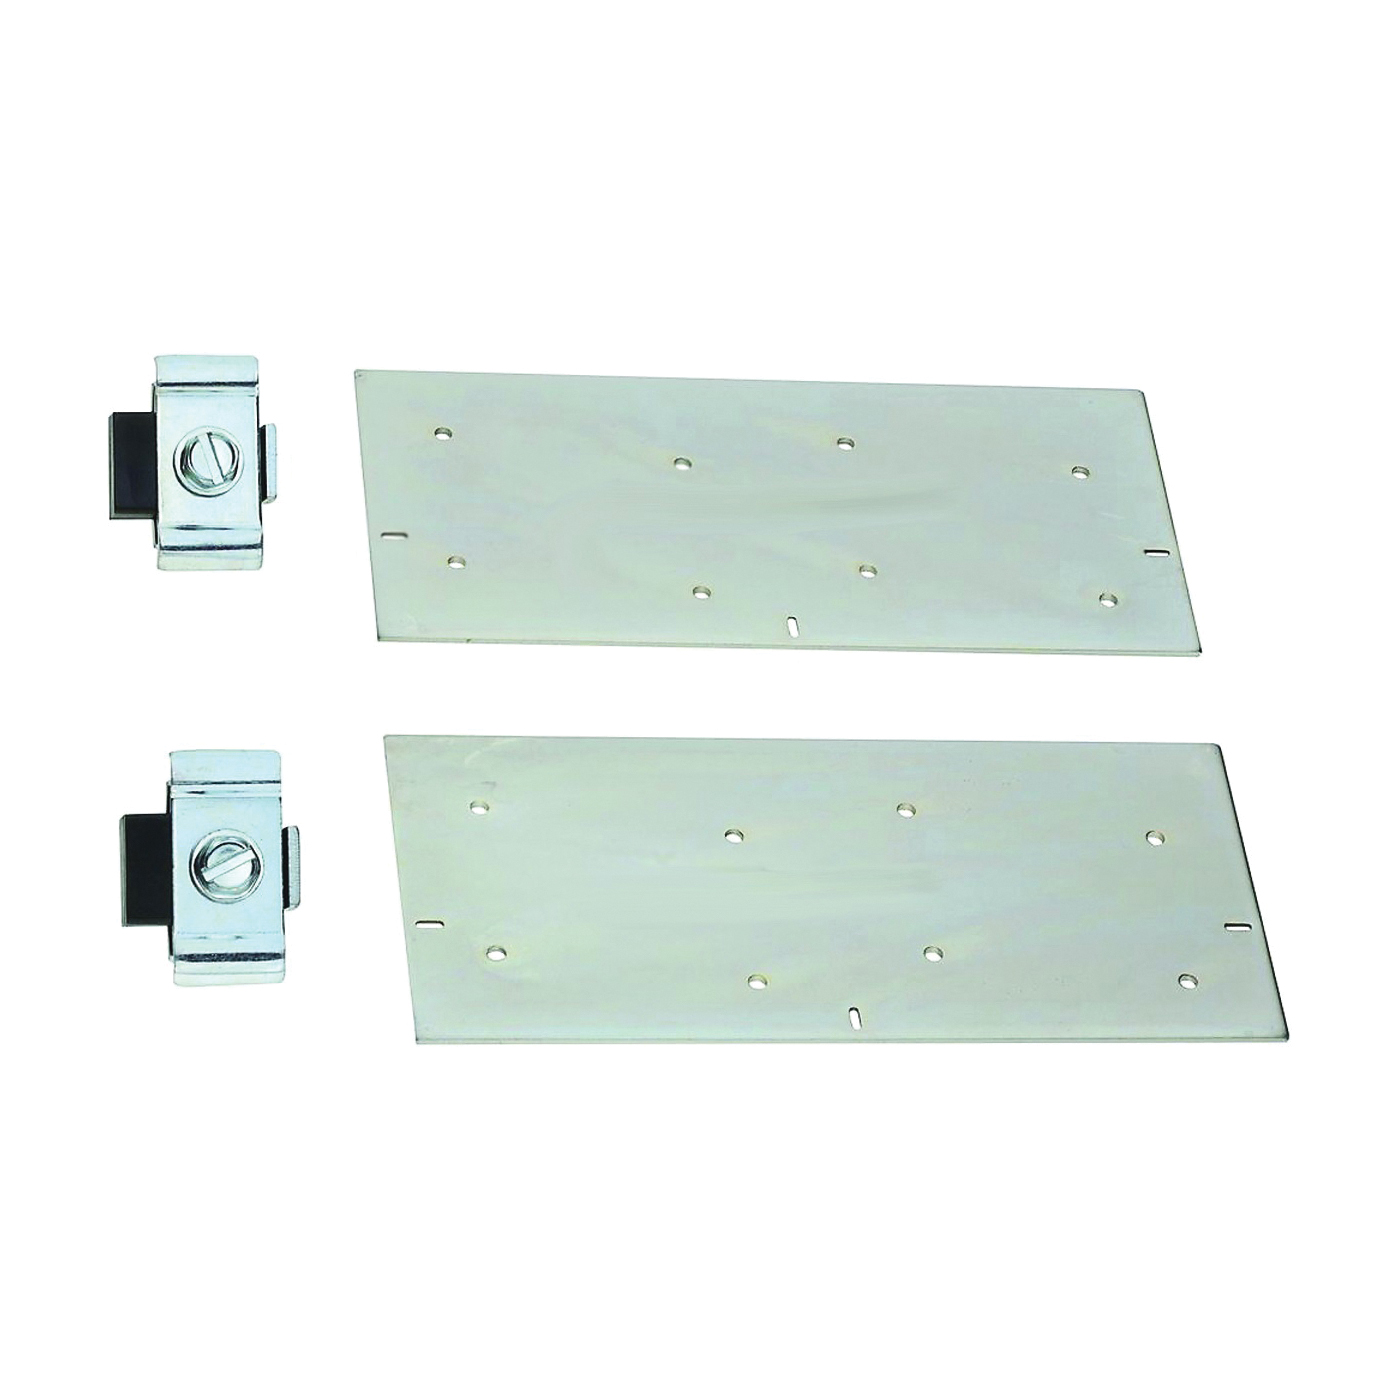 Picture of National Hardware S830-836 Biparting Bracket, Steel, Zinc